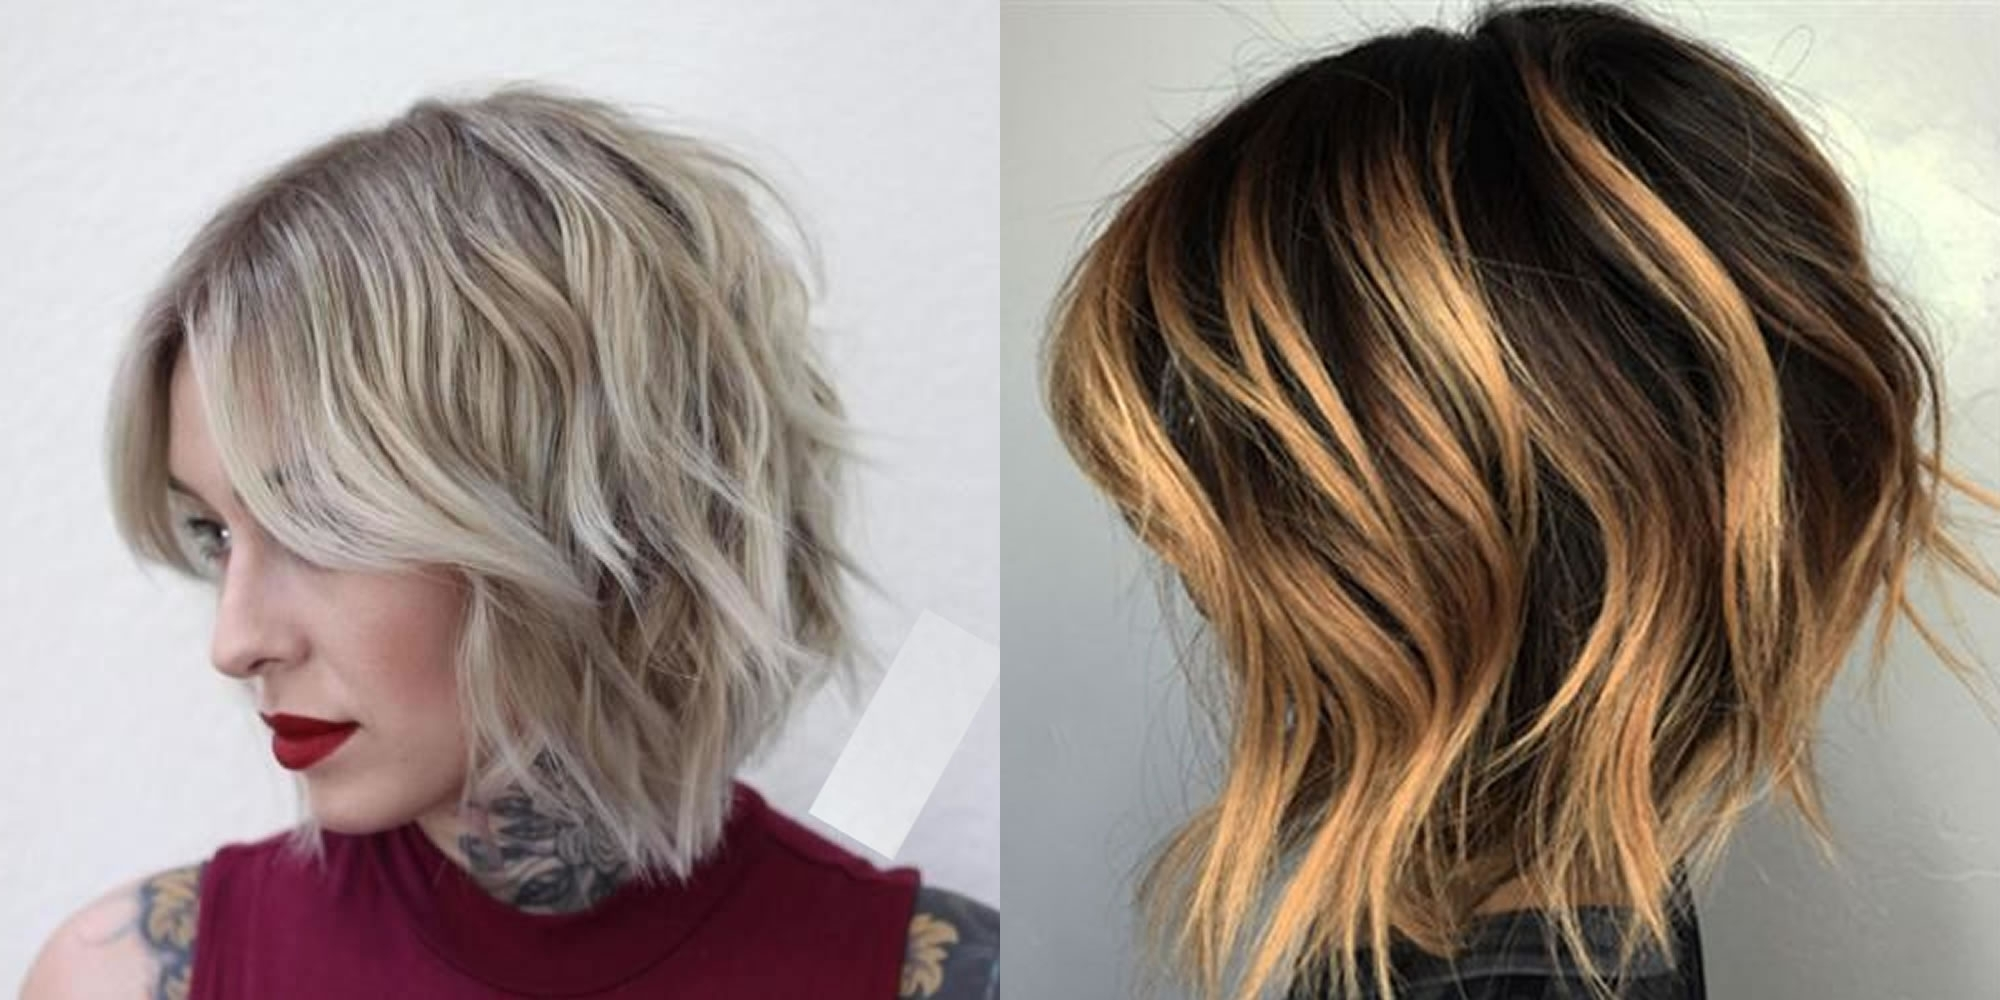 The Best 50 Balayage Bob Hairstyles (short+long) & Highlights – Page Throughout Most Up To Date Shaggy Pixie Hairstyles With Balayage Highlights (View 4 of 20)